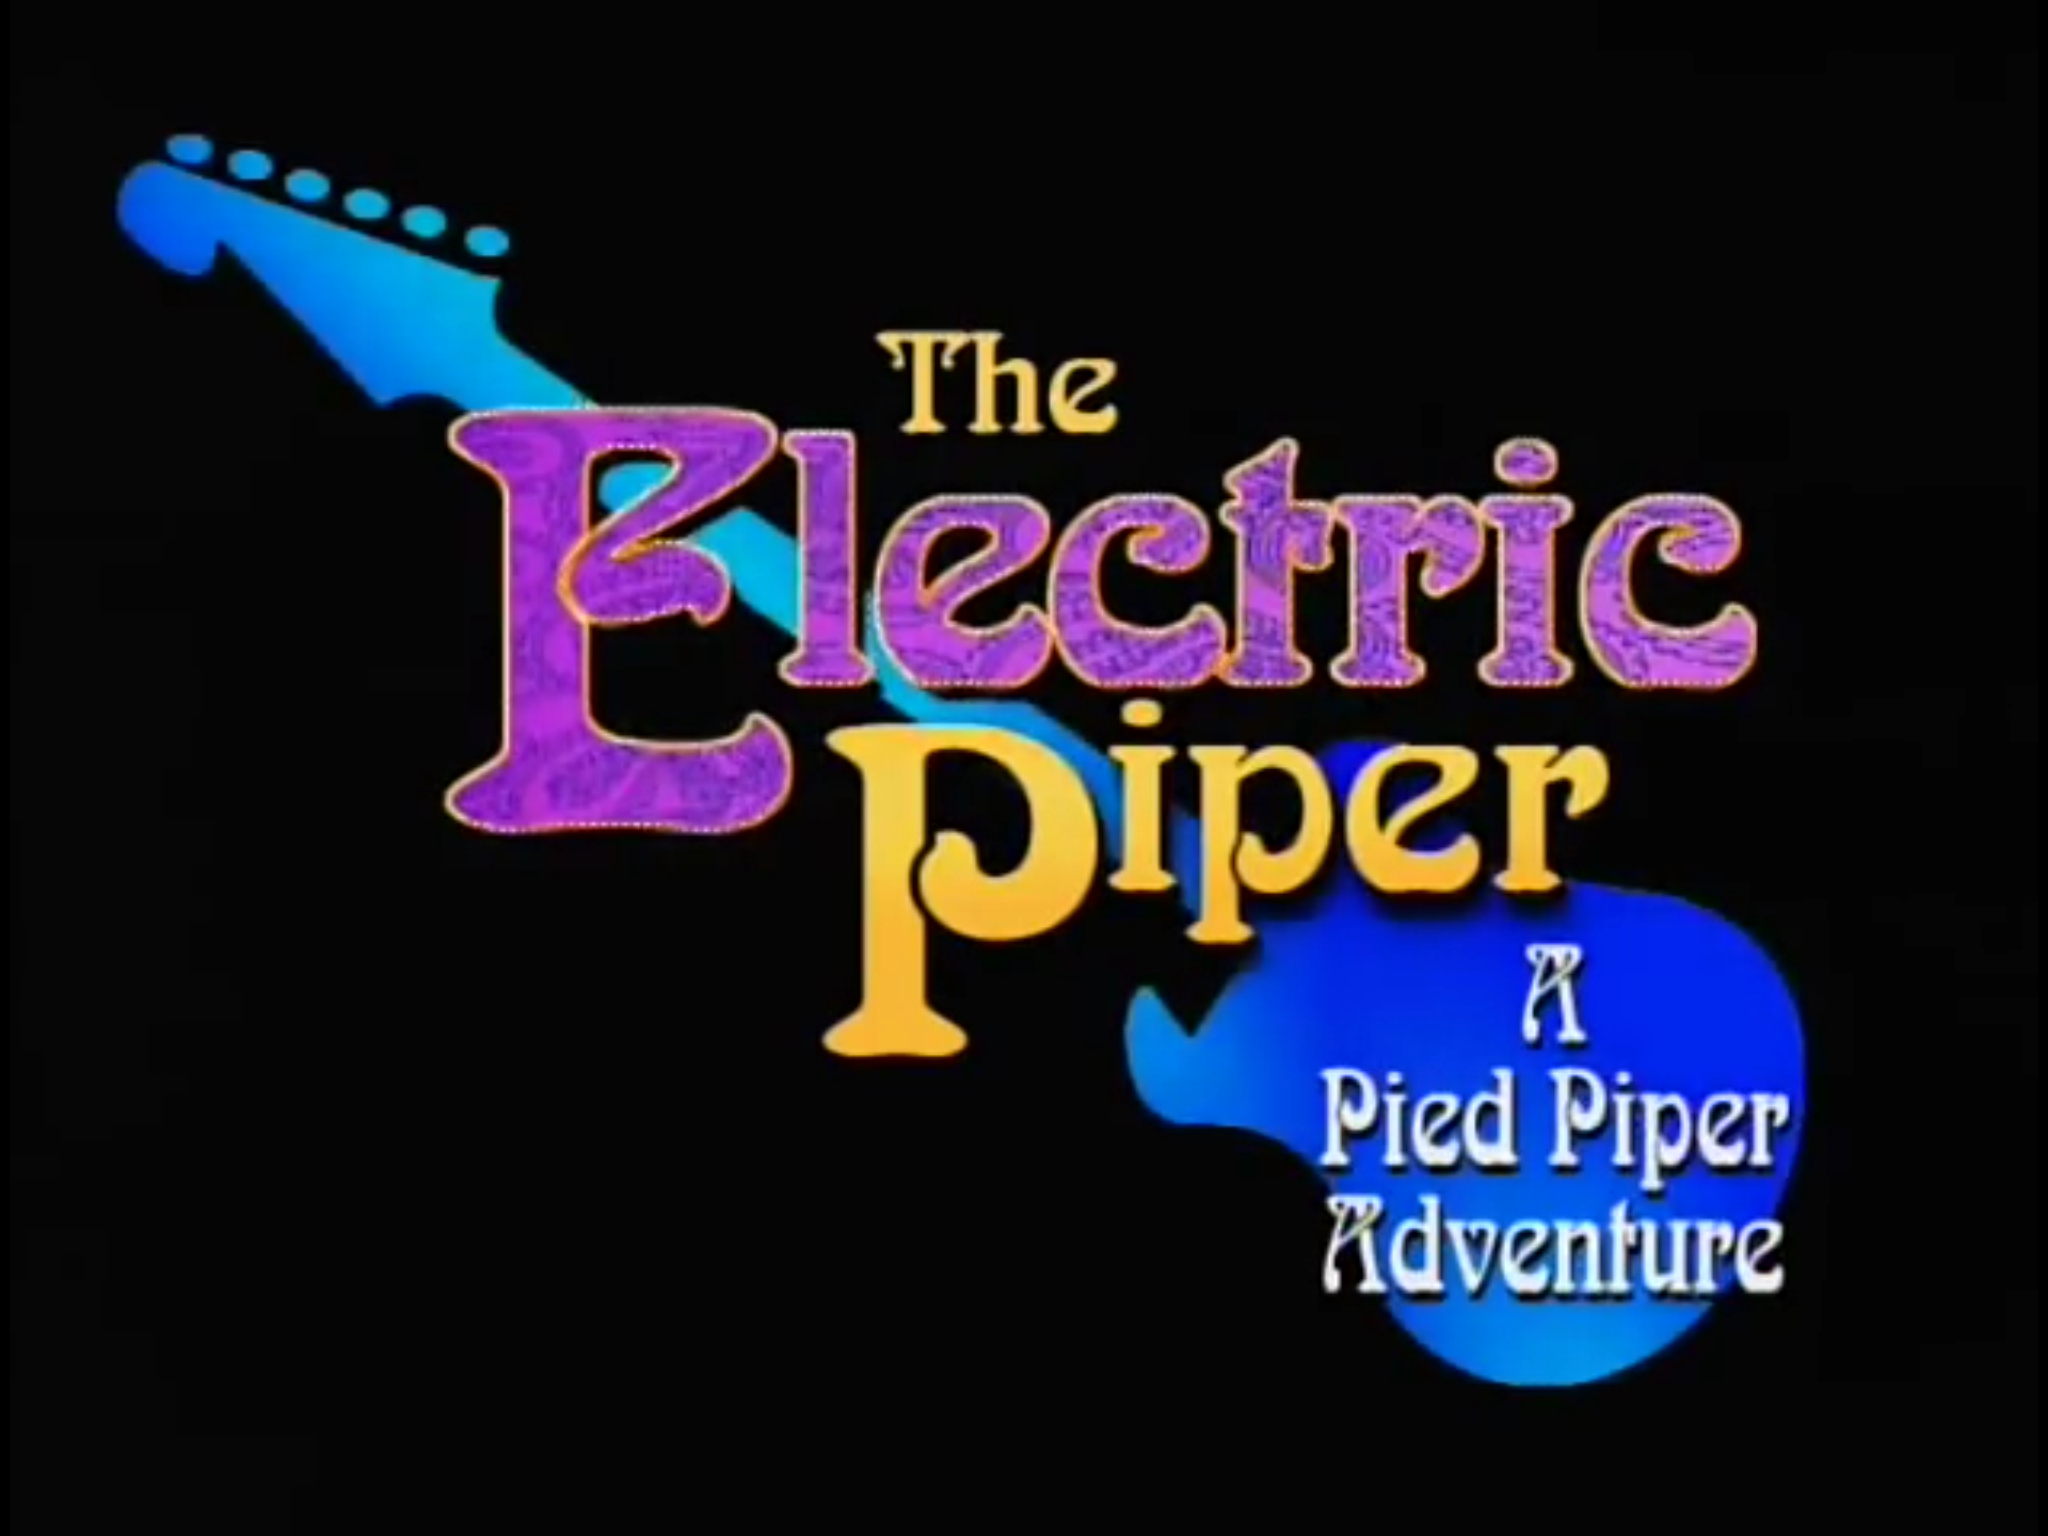 The electric piper title.png